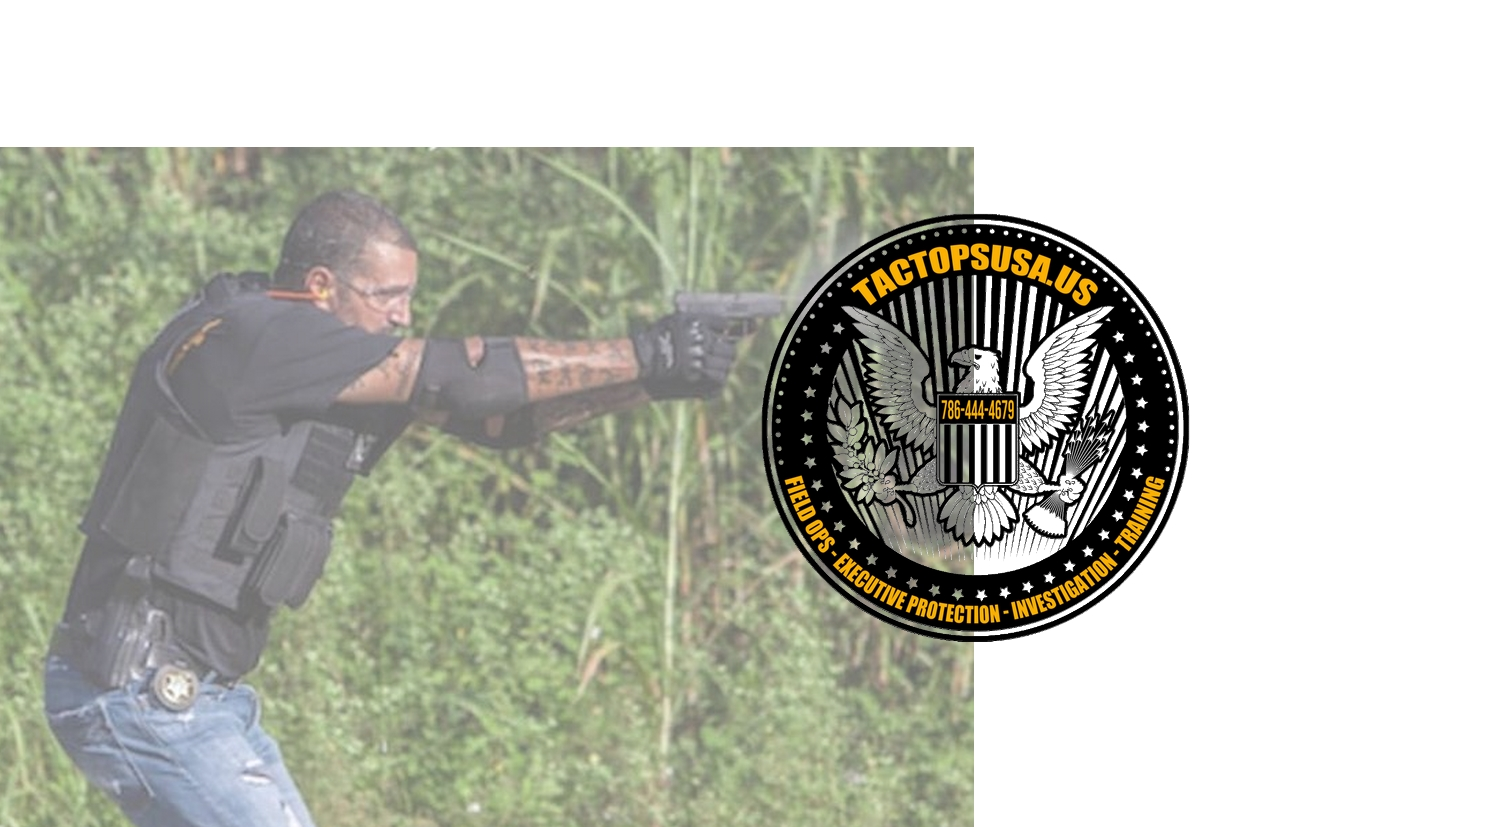 Tactopsusa Firearms Training Self-defense Simunition Range Miami